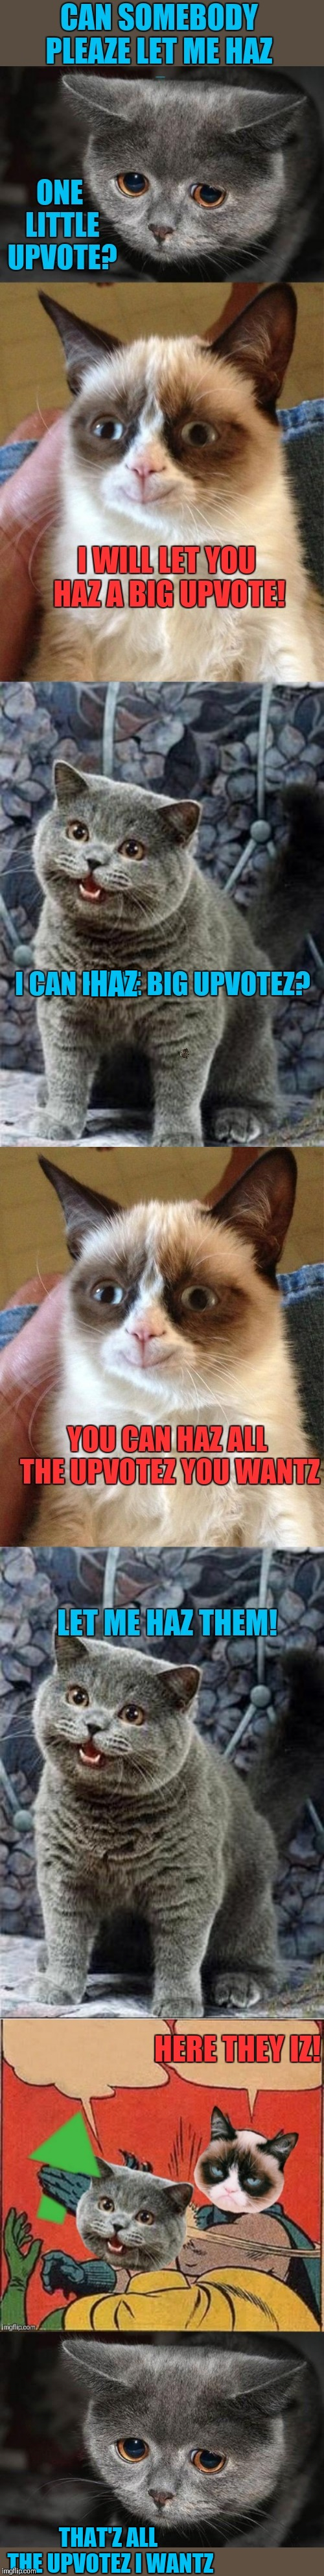 I wants upvote | HAZ THAT'Z ALL THE UPVOTEZ I WANTZ | image tagged in memes,grumpy cat,i can has cheezburger cat,begging for upvotes,batman slapping robin,funny | made w/ Imgflip meme maker